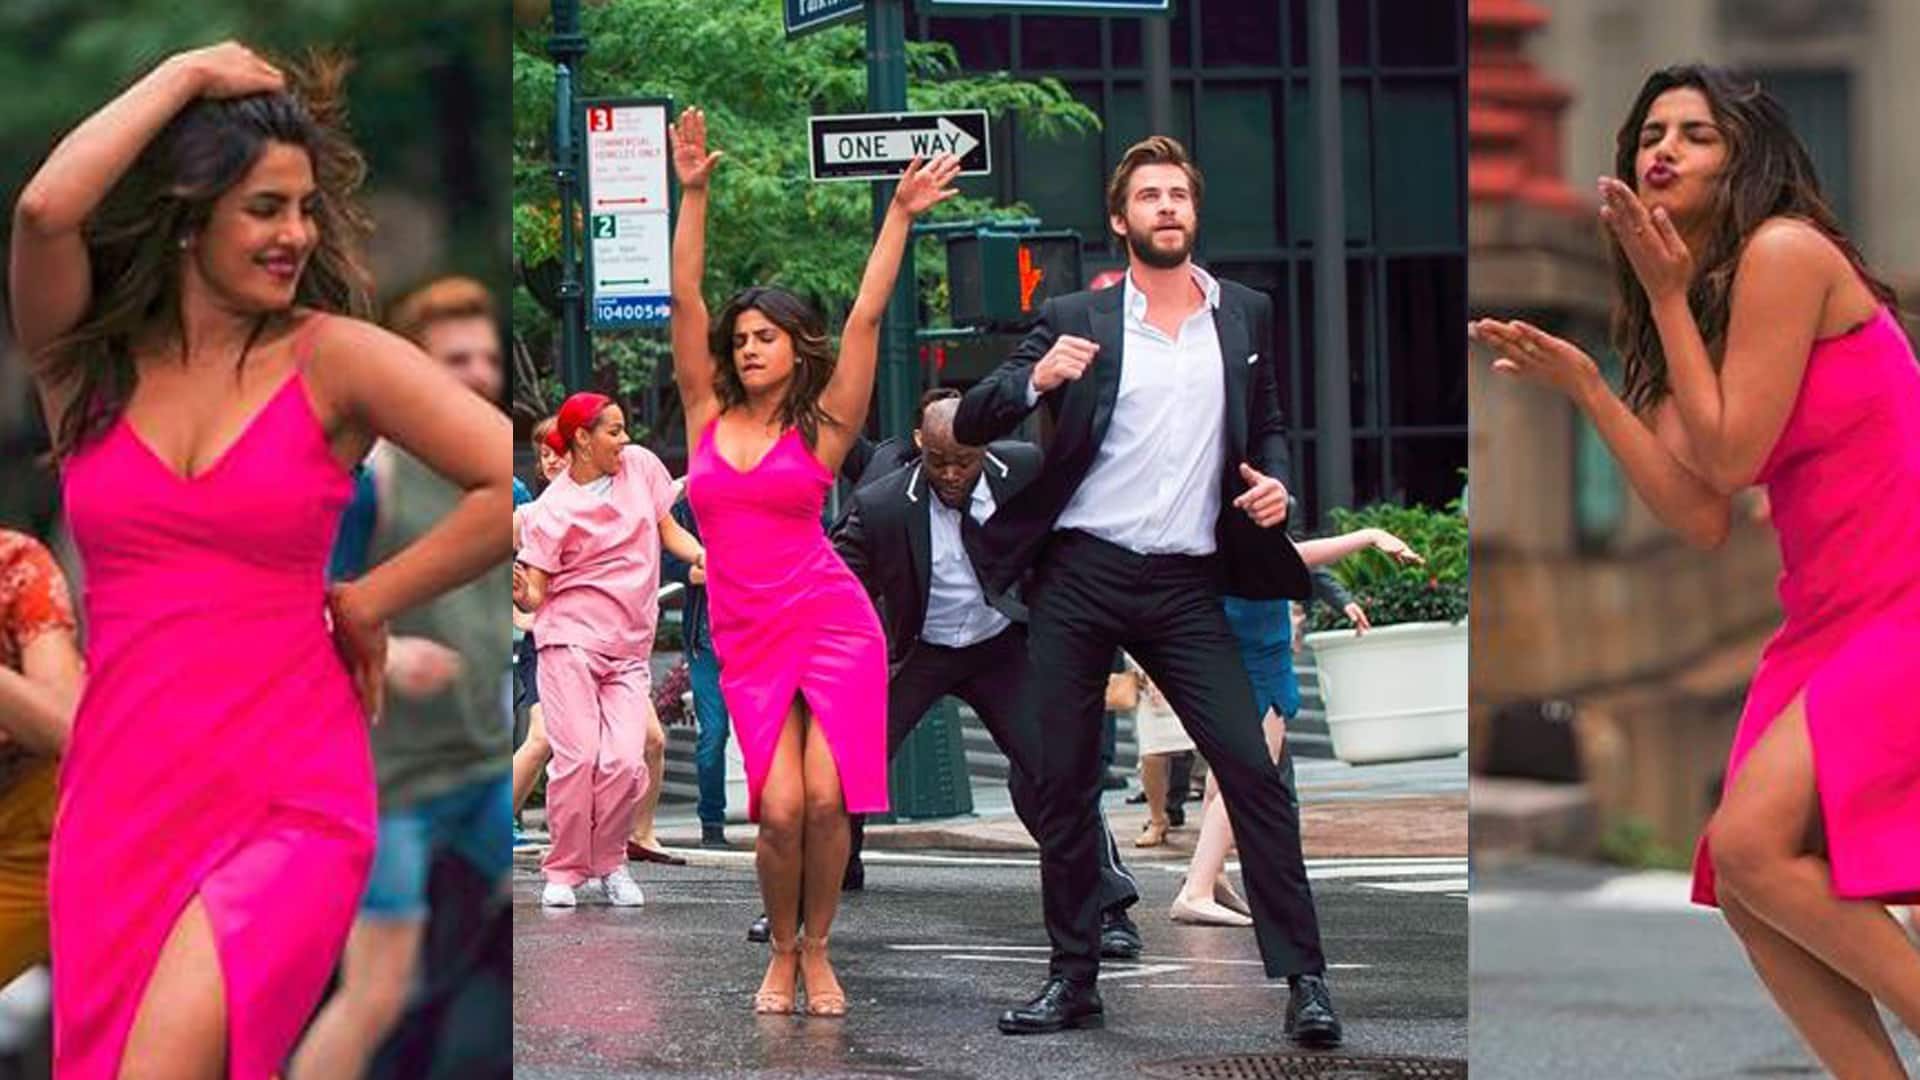 In Pics: Priyanka Chopra shows off her dance moves on the streets of New York